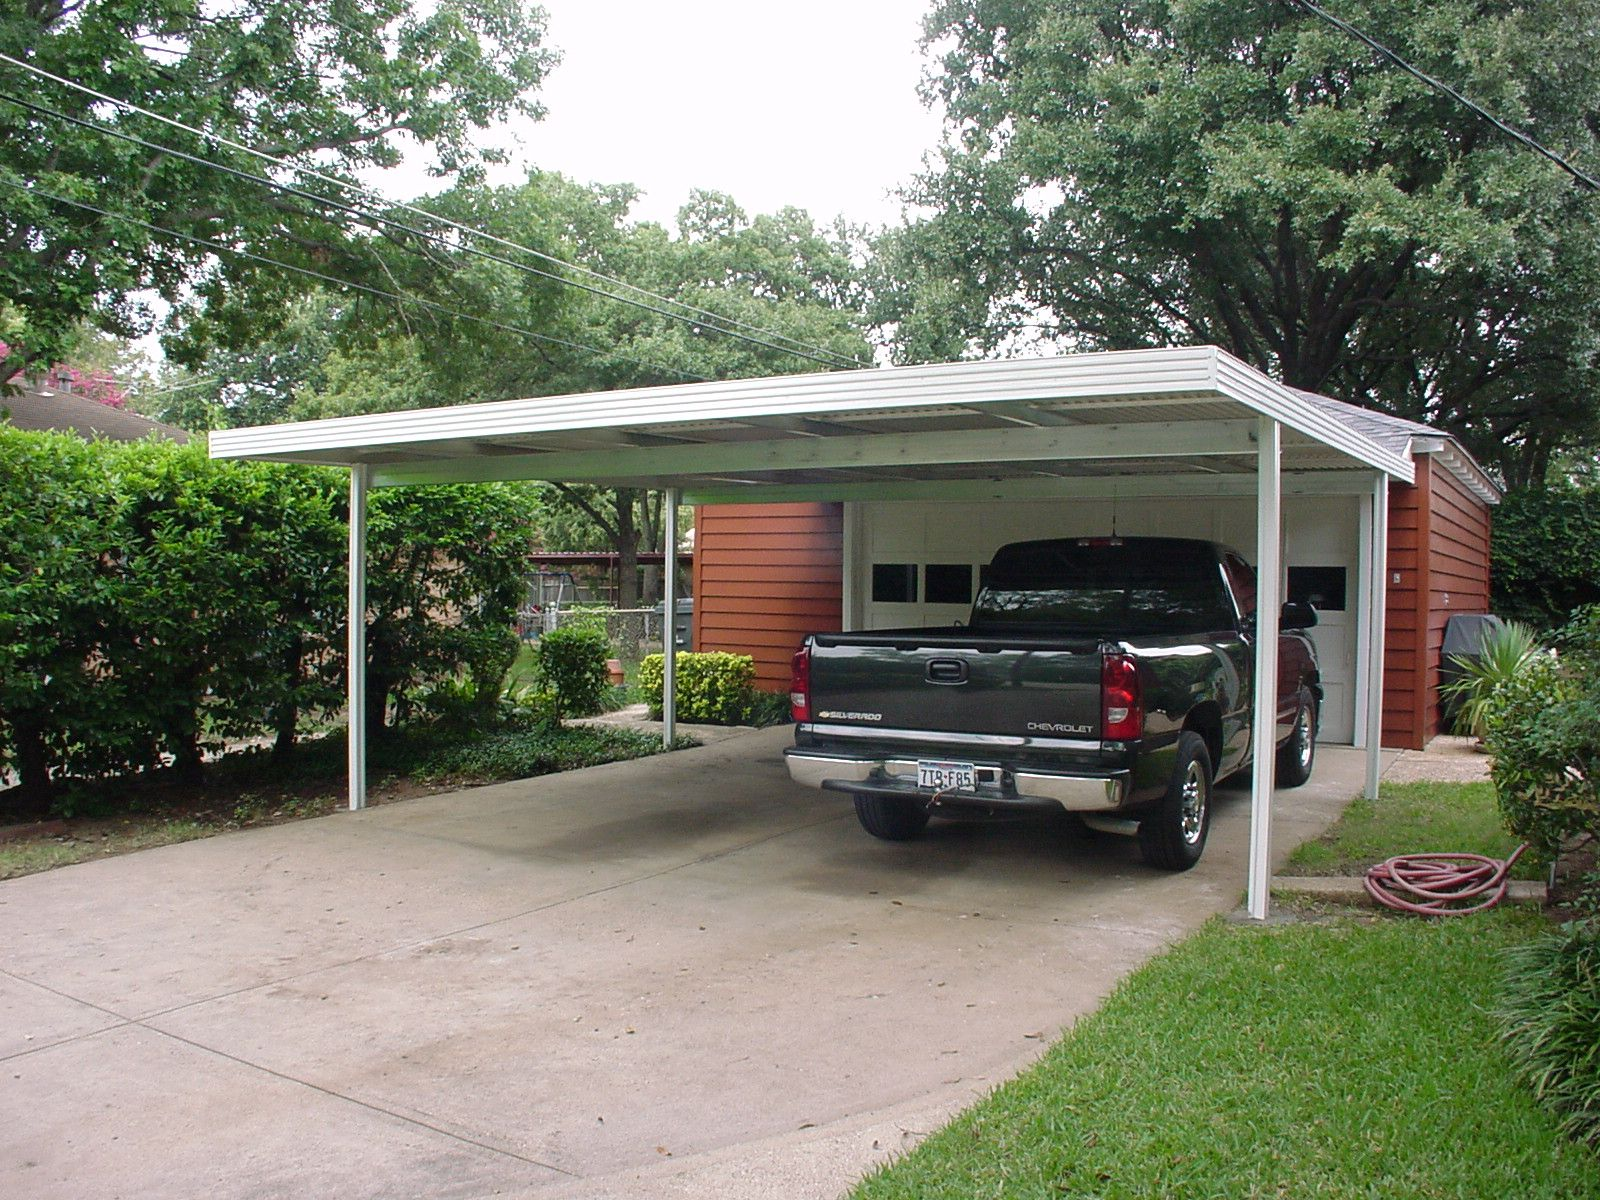 20x20 Carport Attached To Home Modernhomepatio Com Carport Patio Carport Designs Porch Design